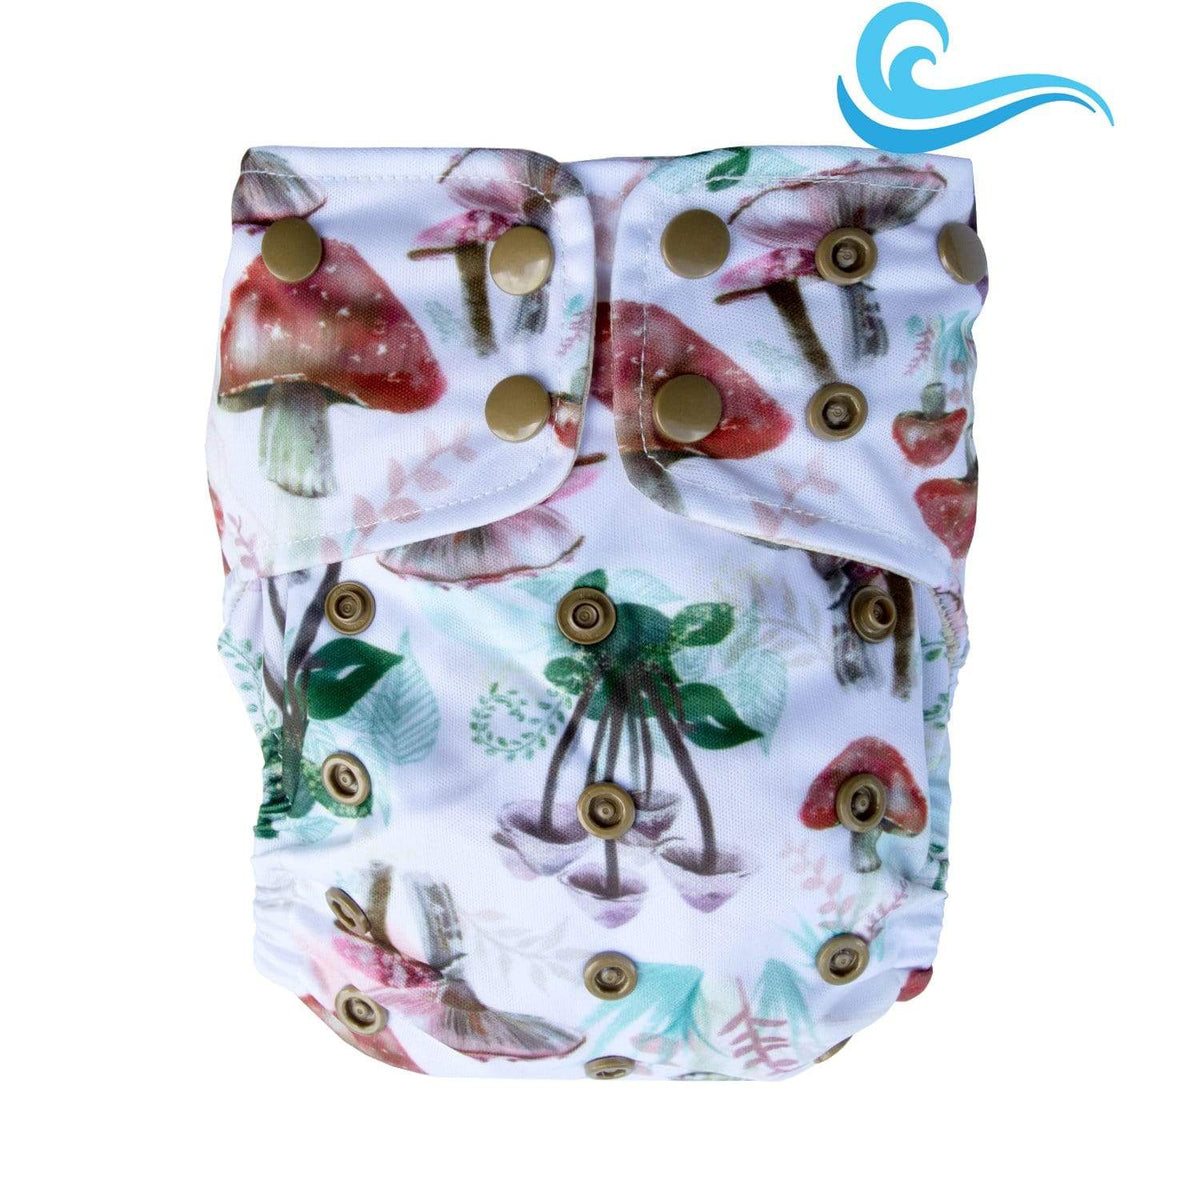 Lighthouse Kid's Company Simplicity Swim Diaper - Toadstool